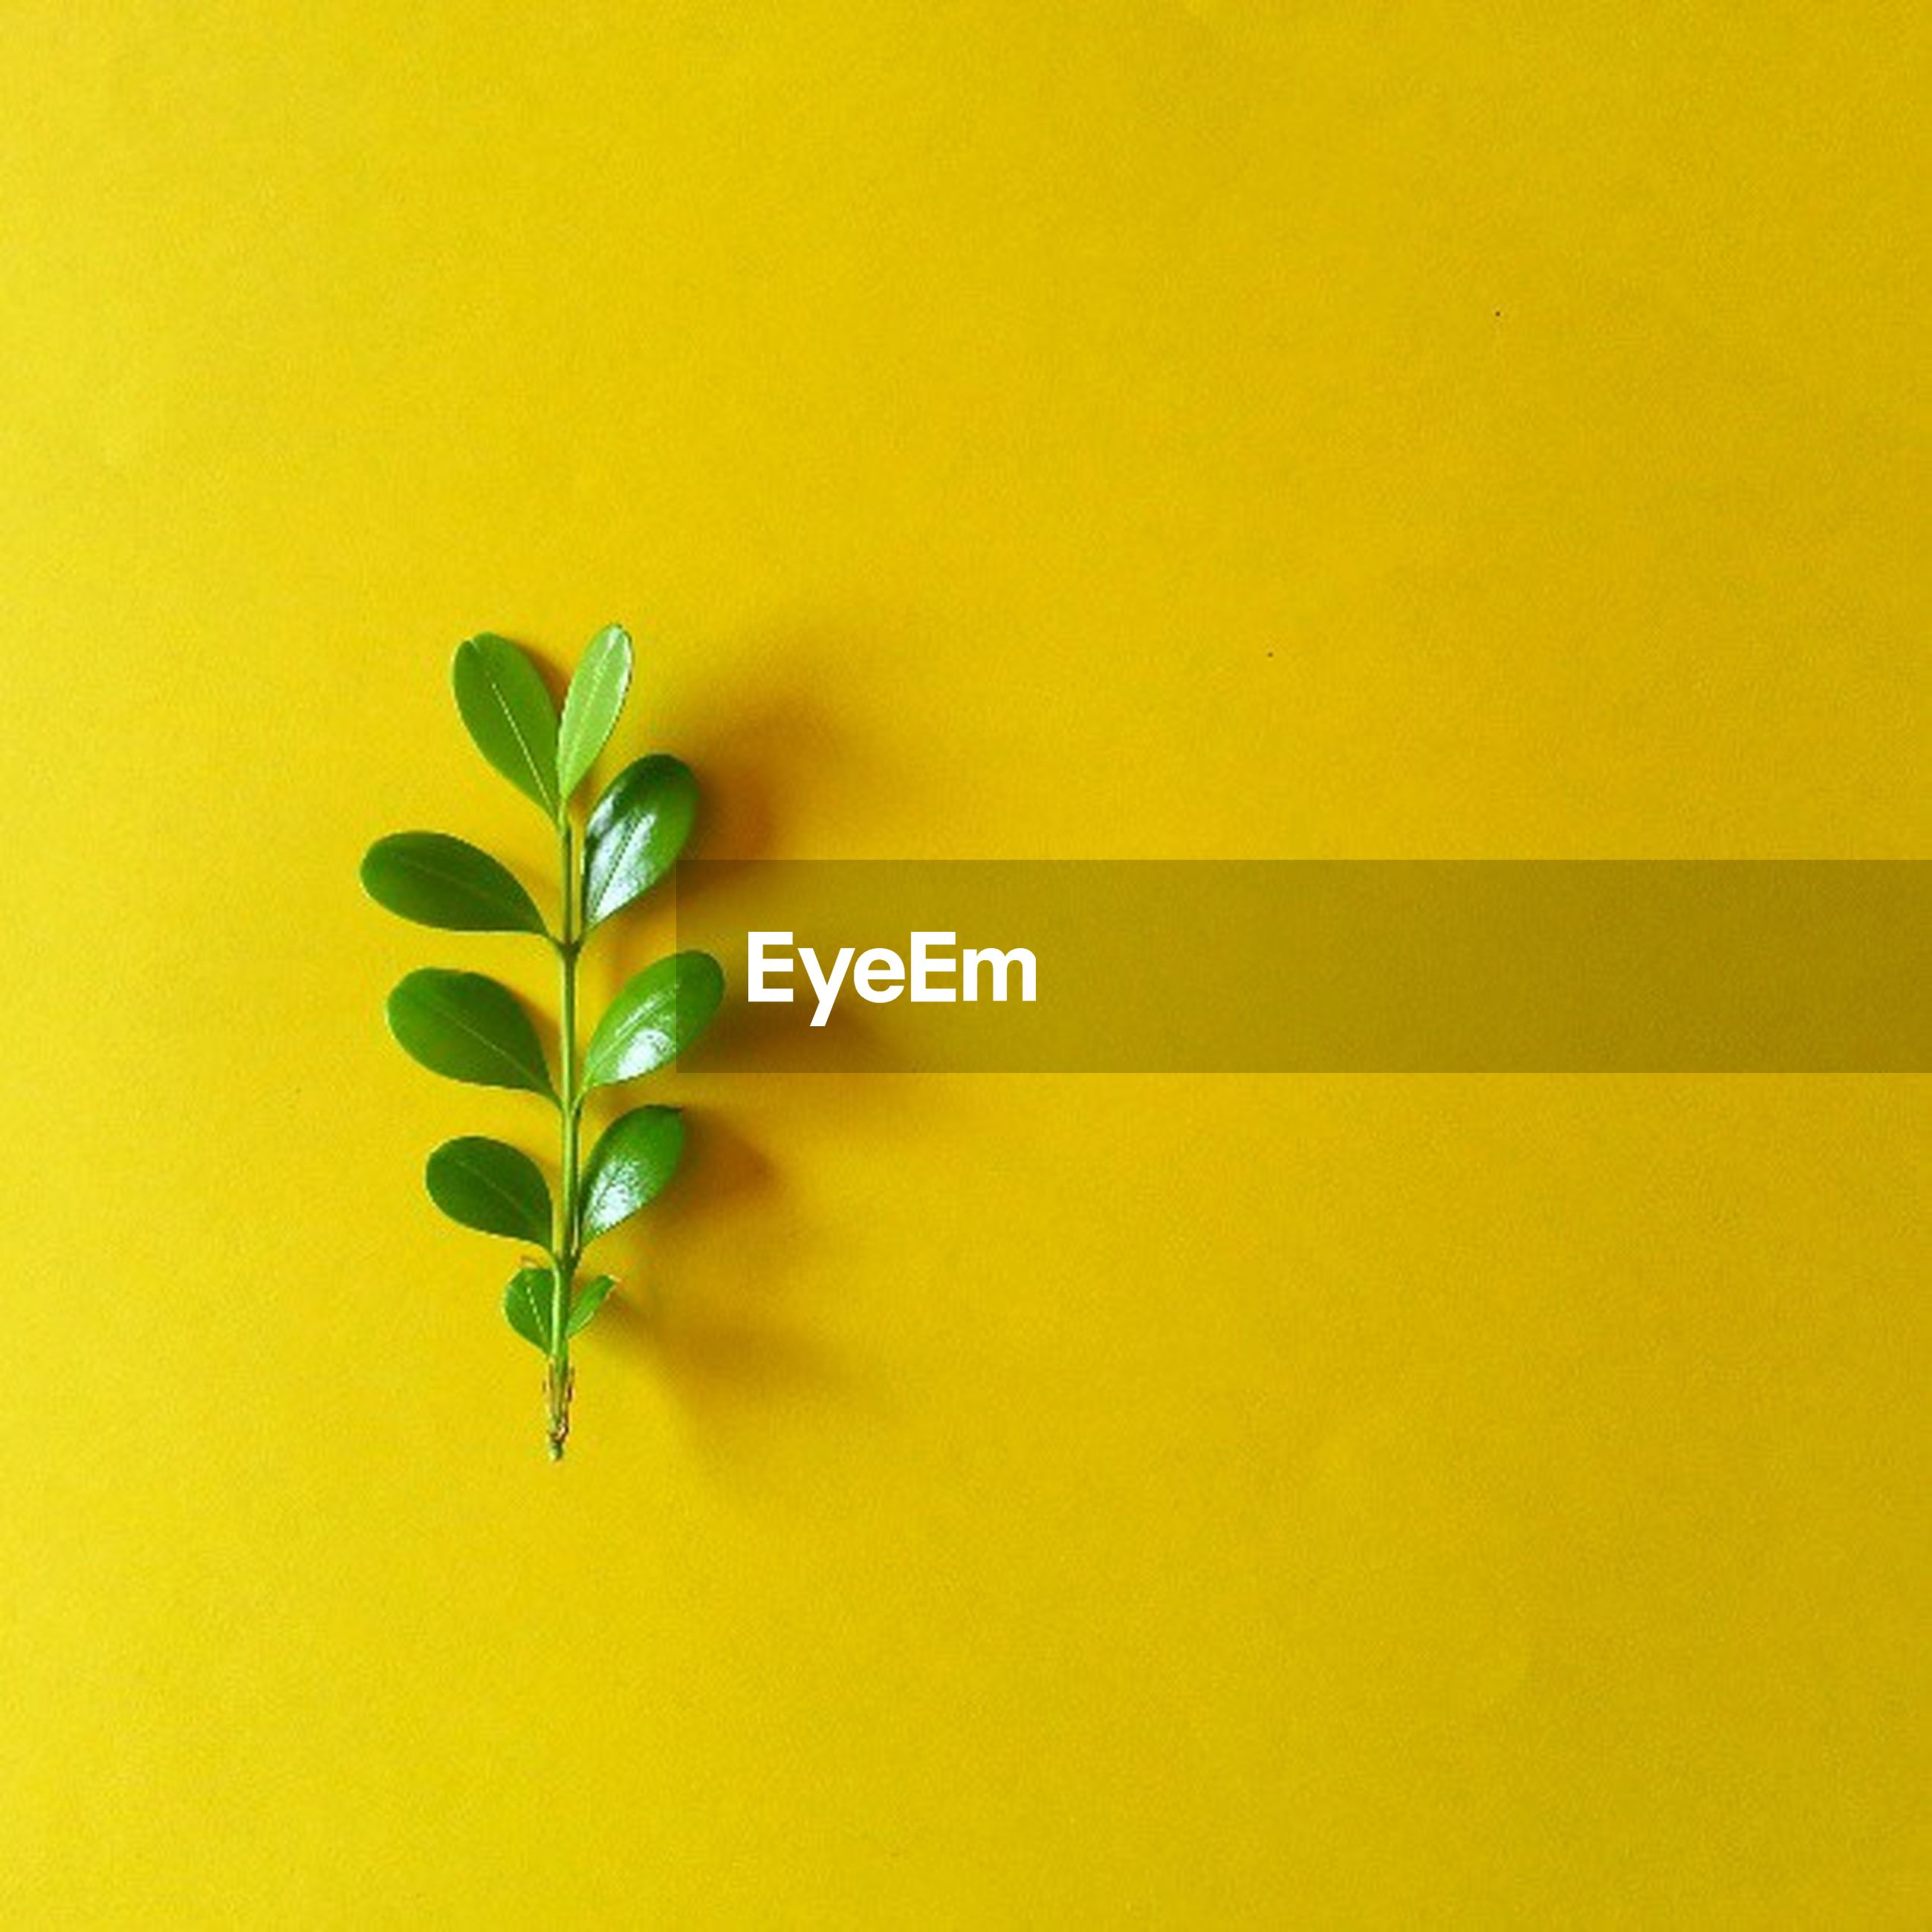 leaf, yellow, green color, close-up, growth, copy space, studio shot, nature, leaf vein, plant, white background, green, stem, no people, beauty in nature, backgrounds, leaves, full frame, wall - building feature, outdoors